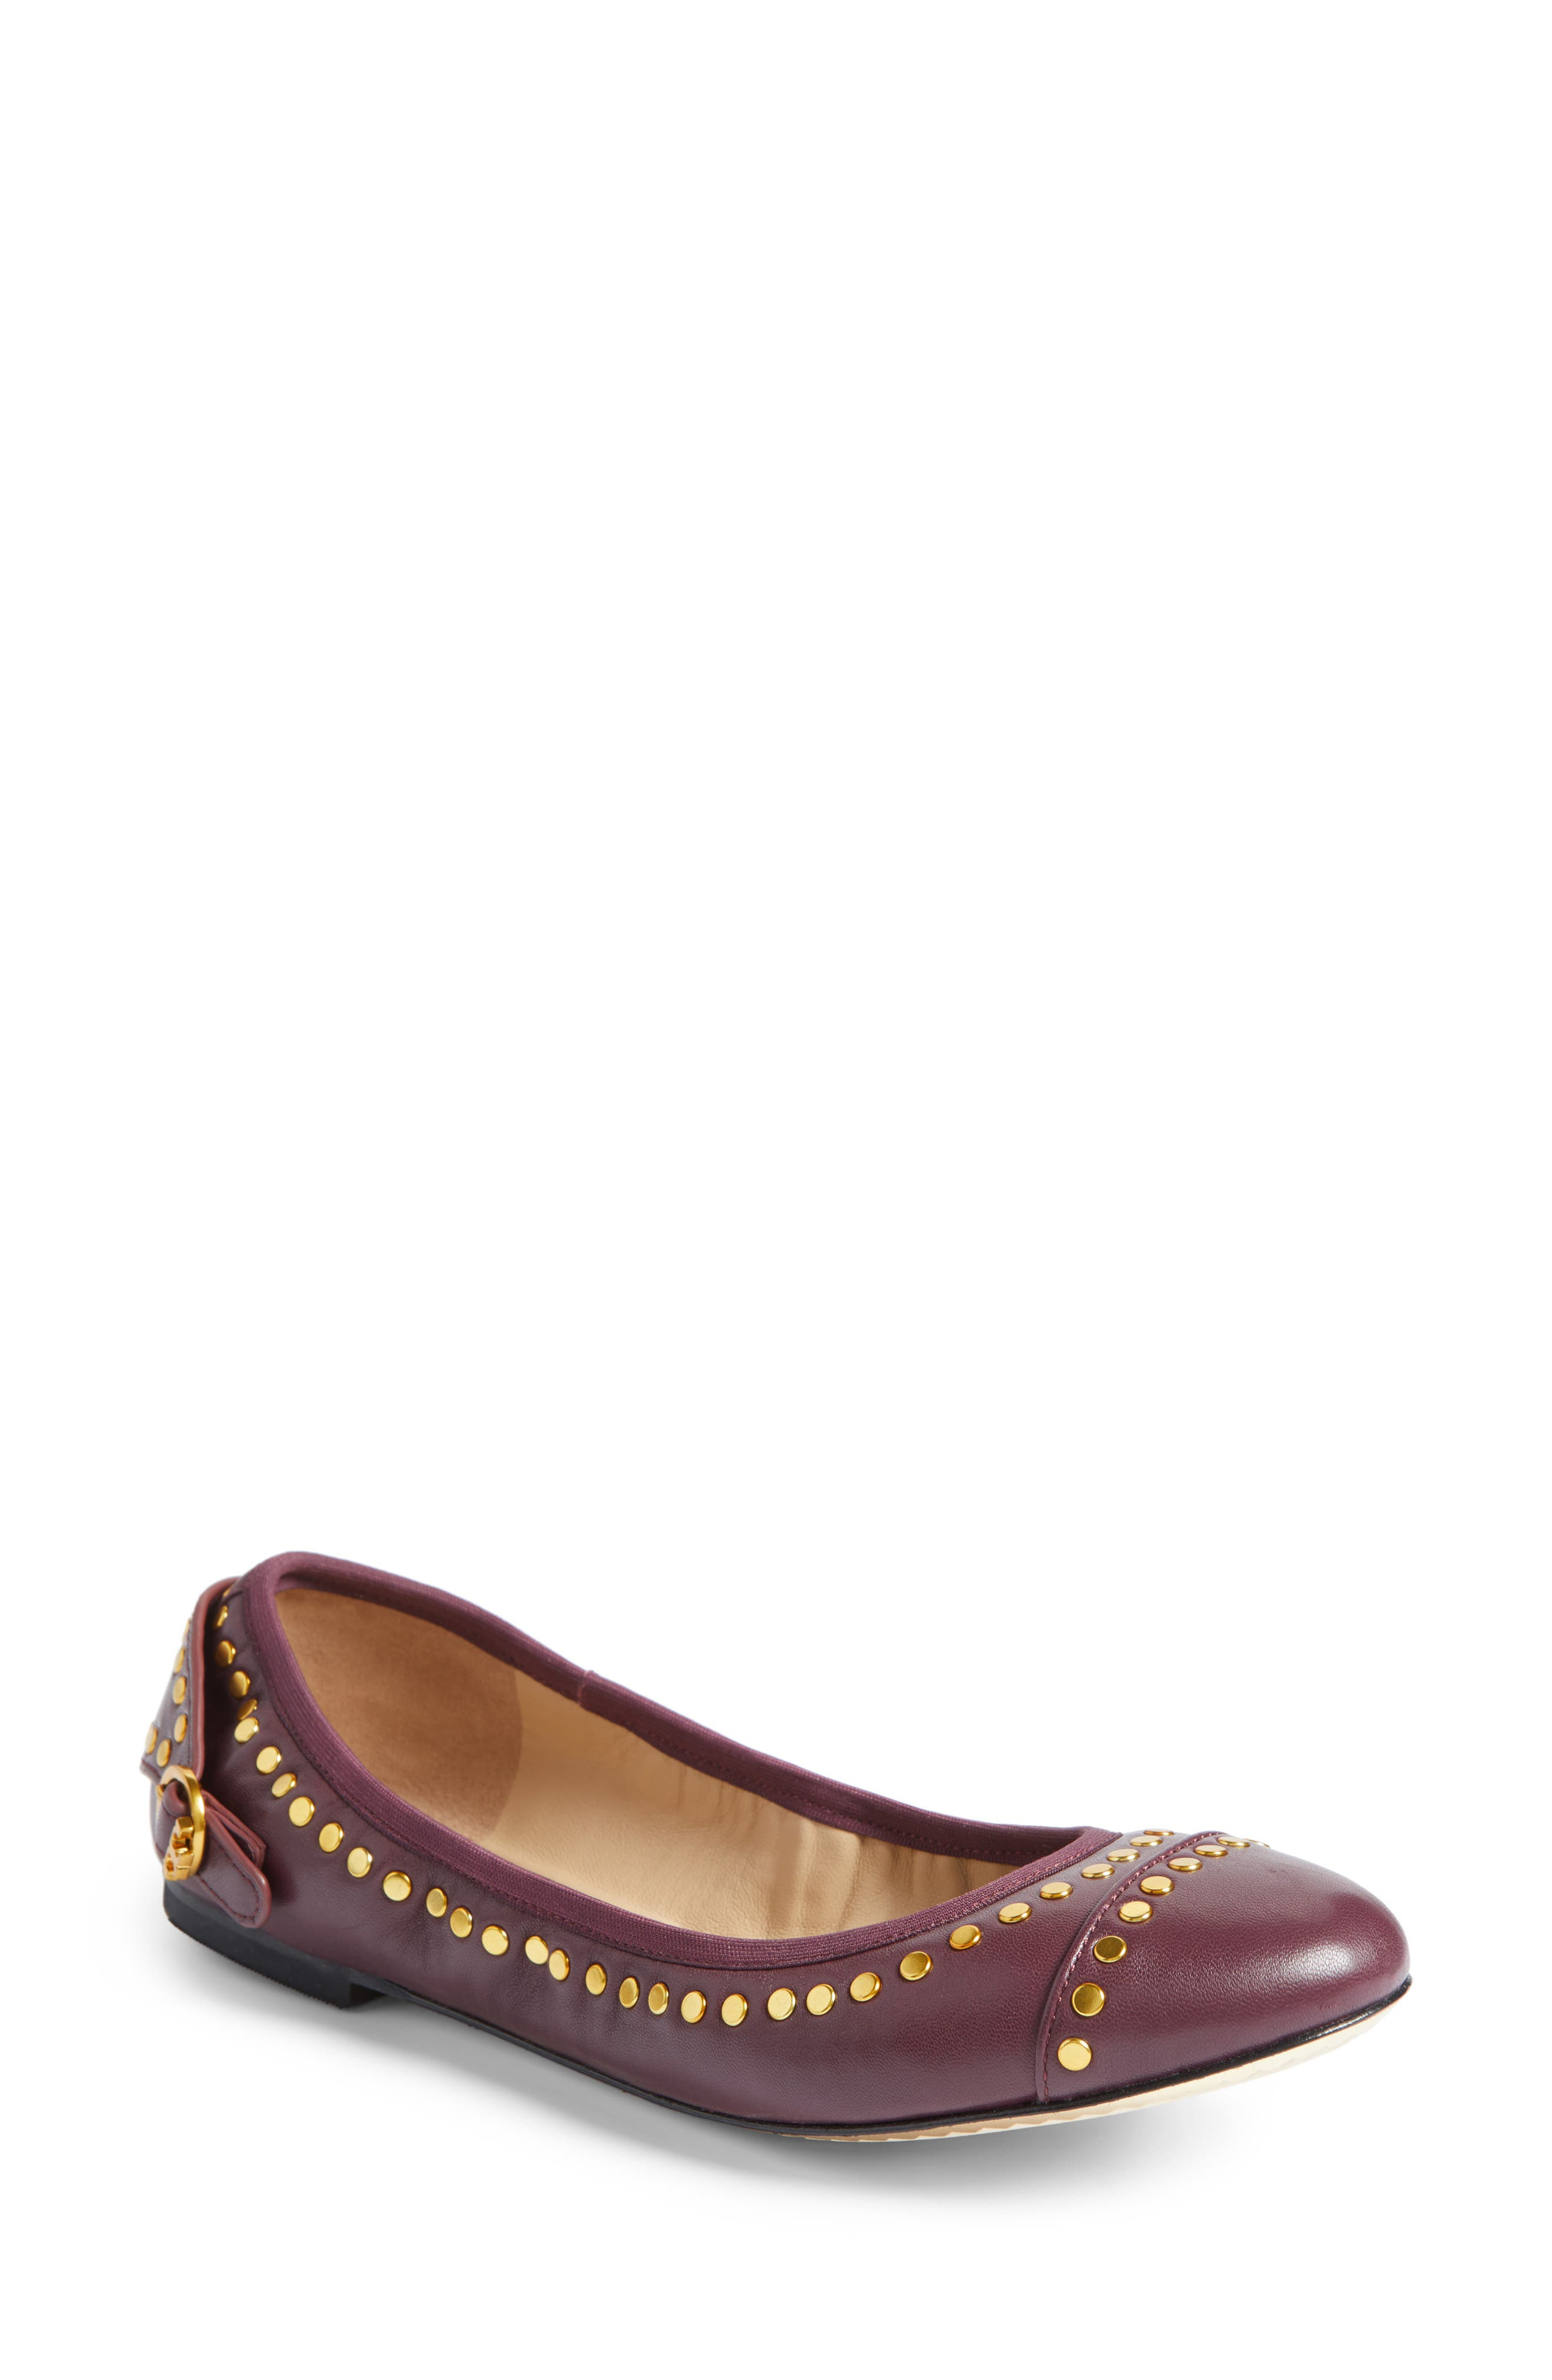 Main Image - Tory Burch Holden Studded Cap Toe Flat (Women)